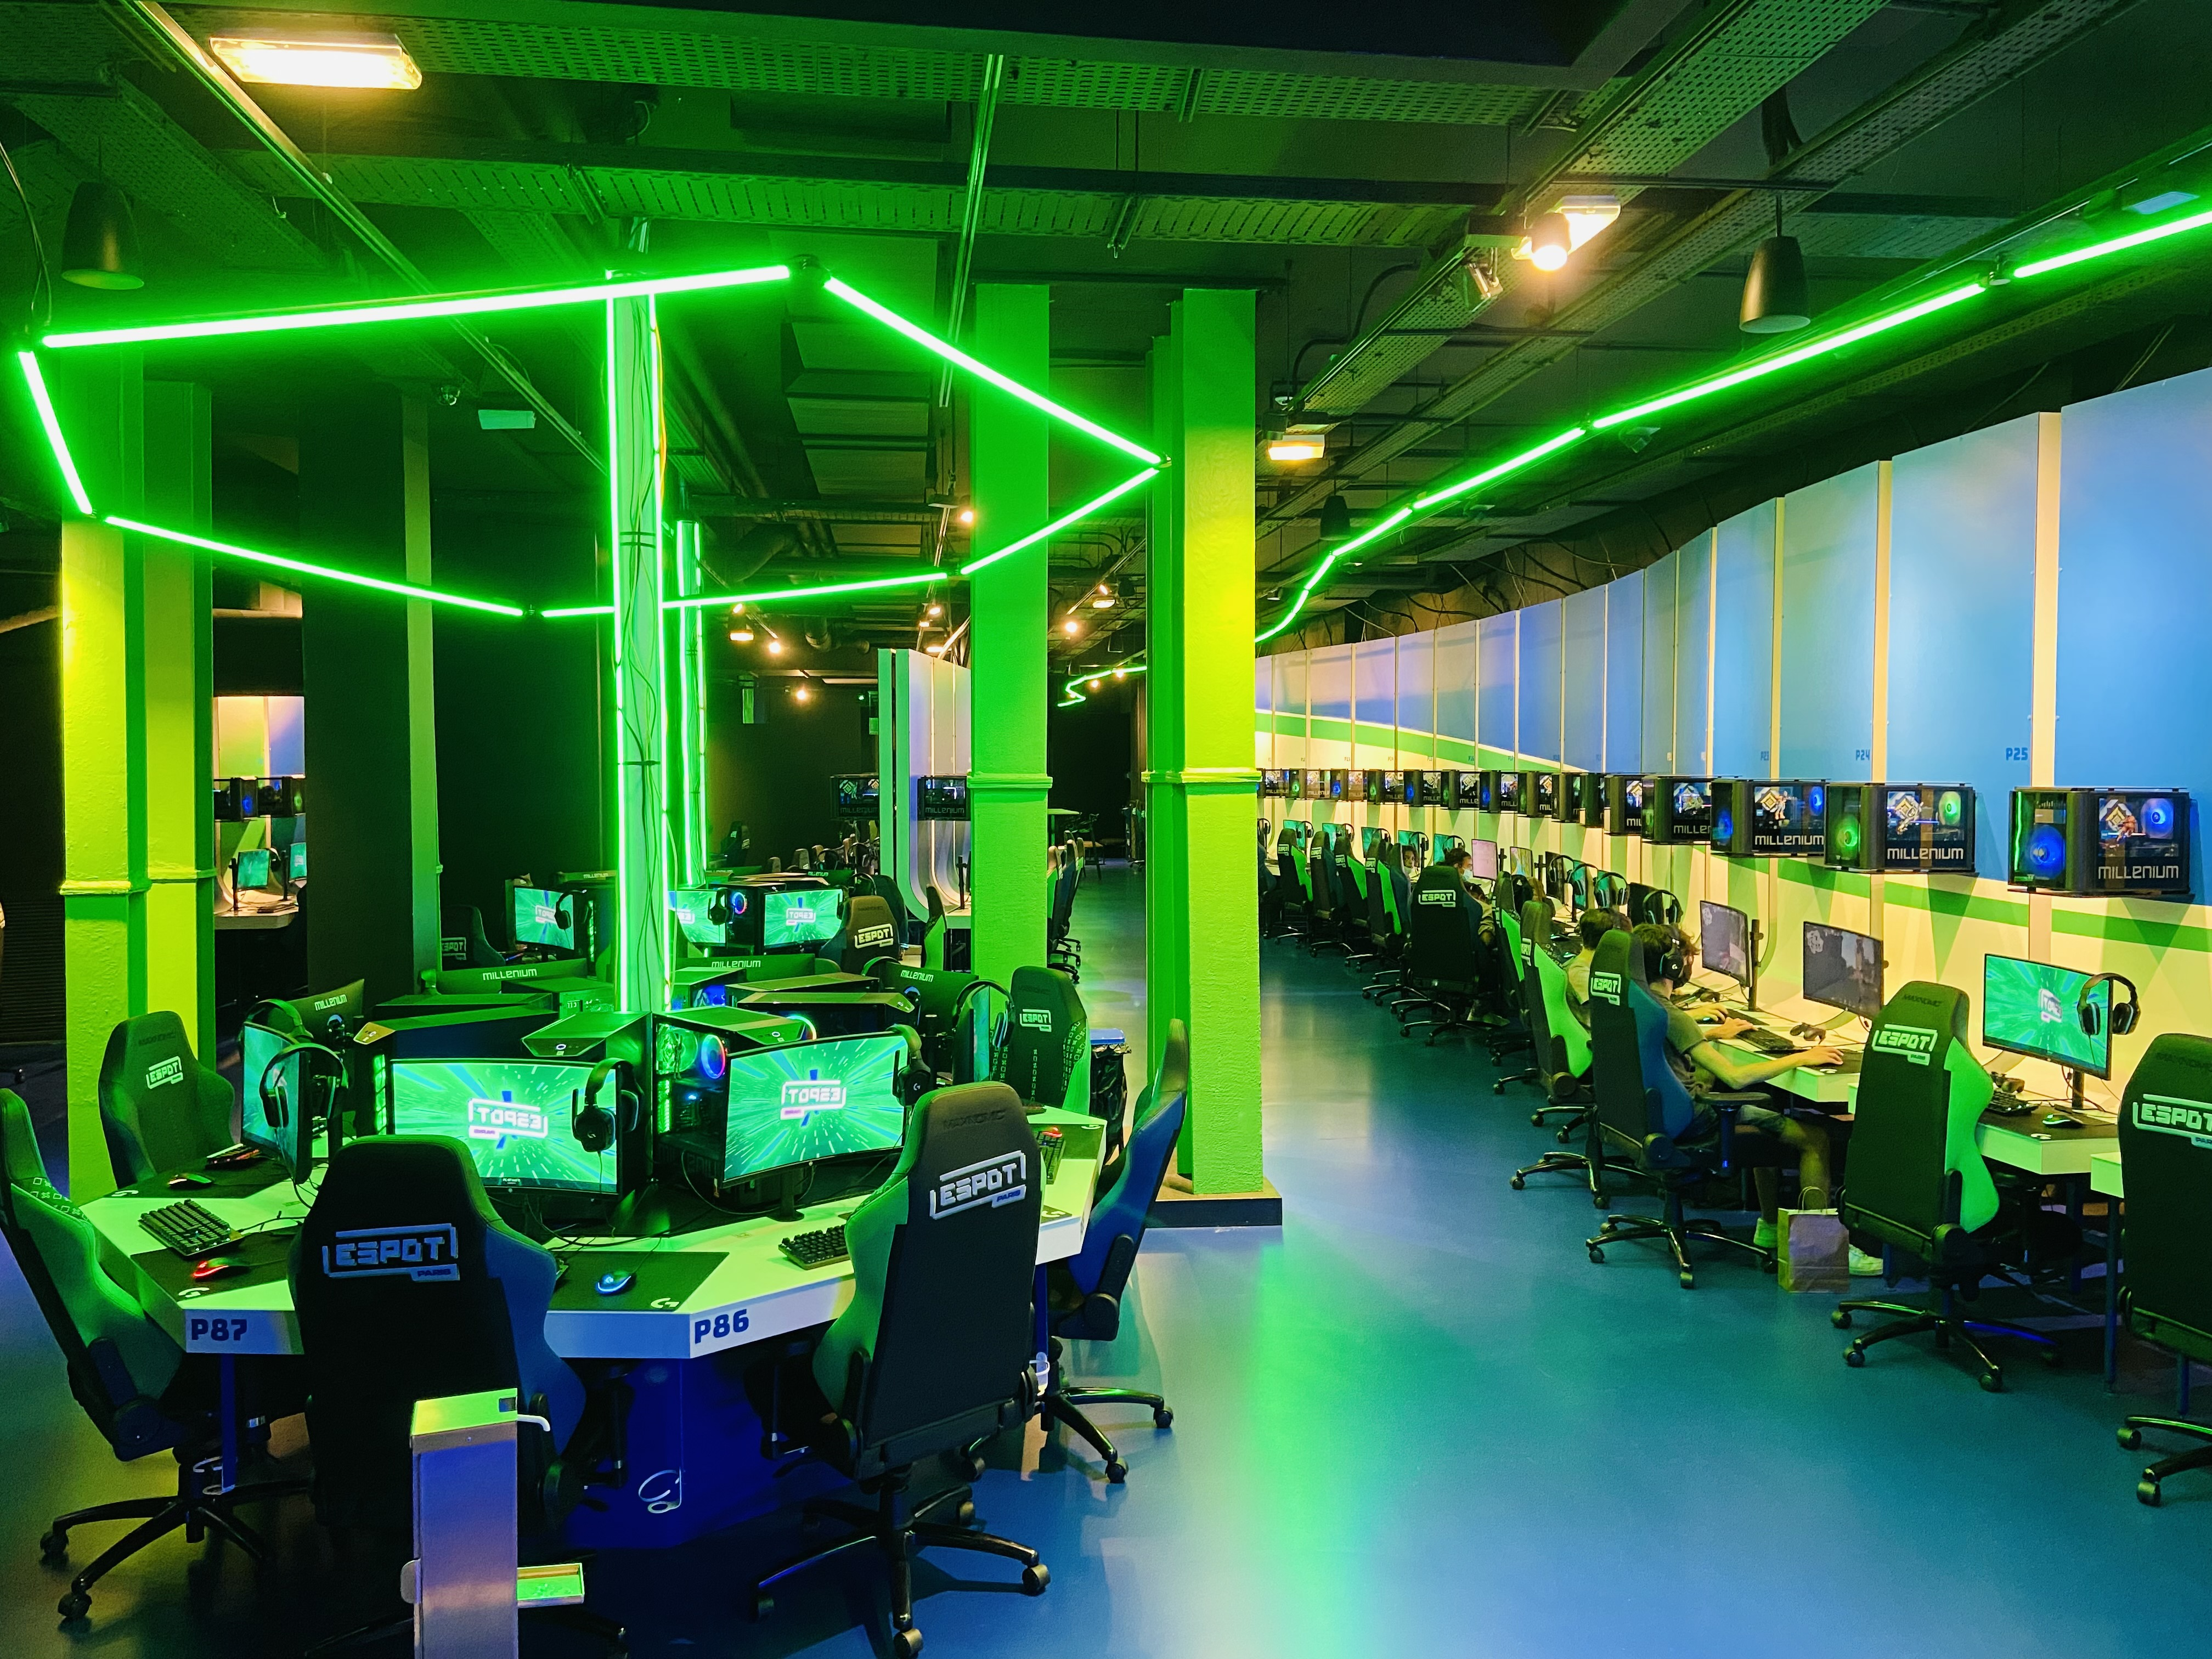 ESpot's PC gaming space is both stylish and spacious